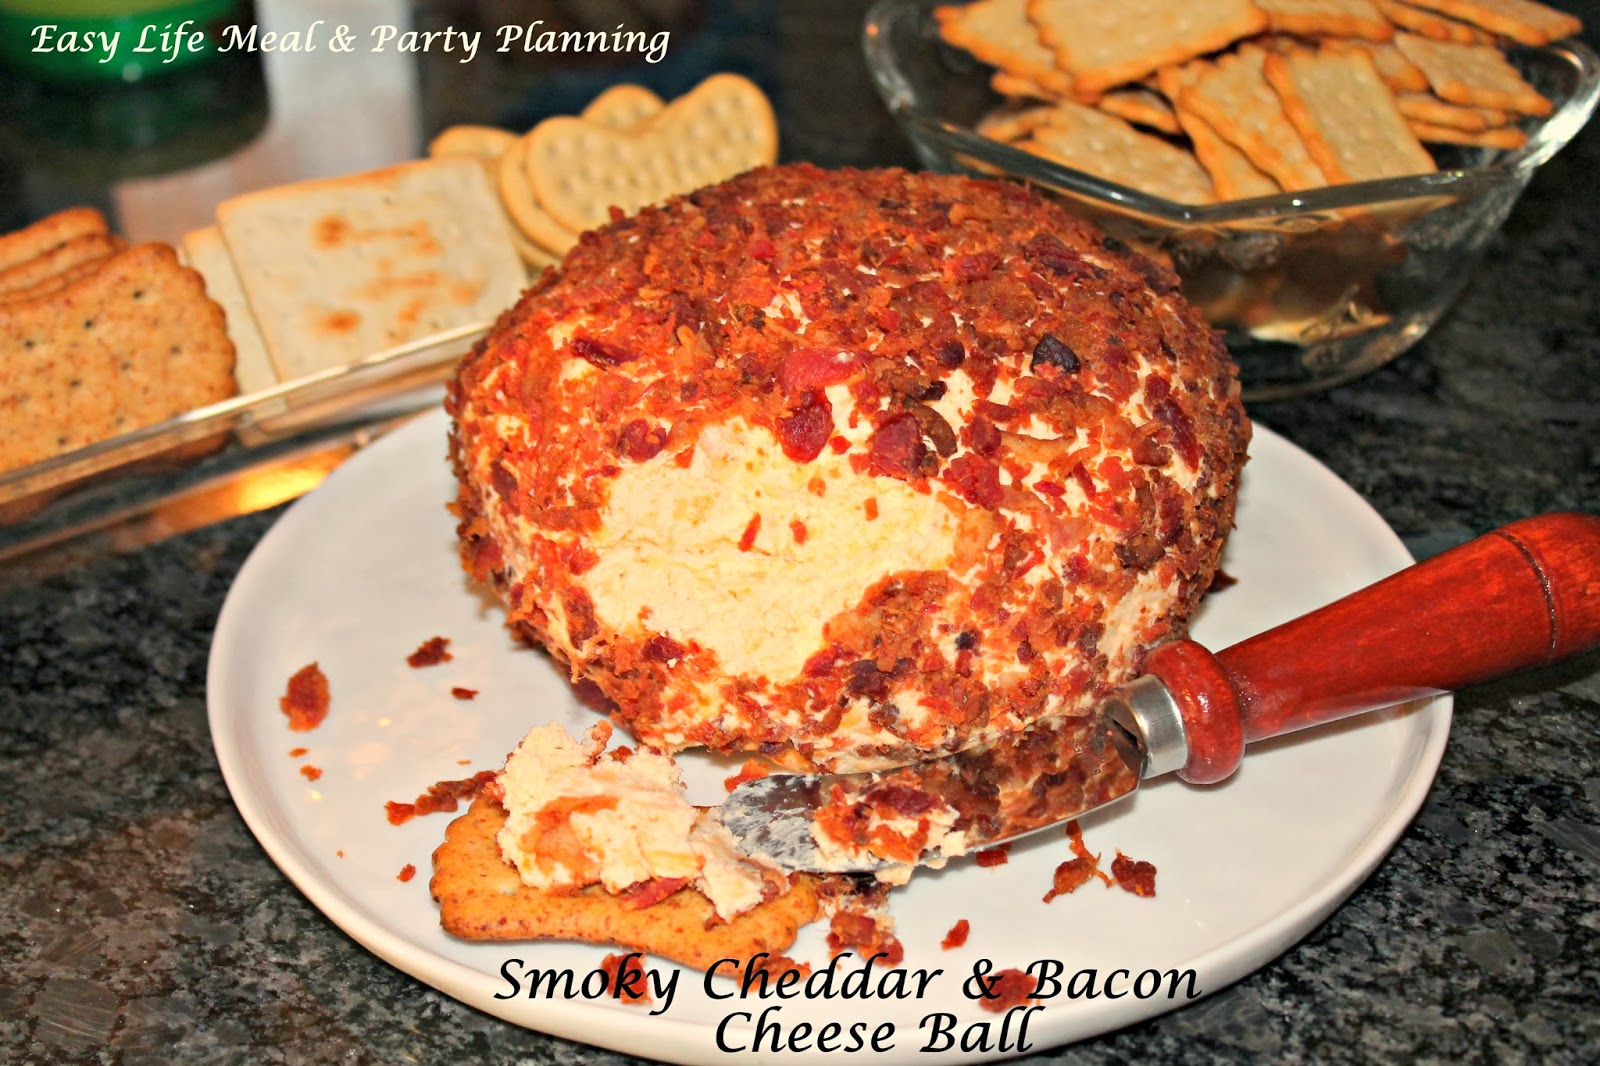 Smoky Cheddar & Bacon Cheese Ball - Easy Life Meal & Party Planning -Who could possibly resist smoky cheddar cheese and bacon!! This has an incredible taste and is extremely easy to make